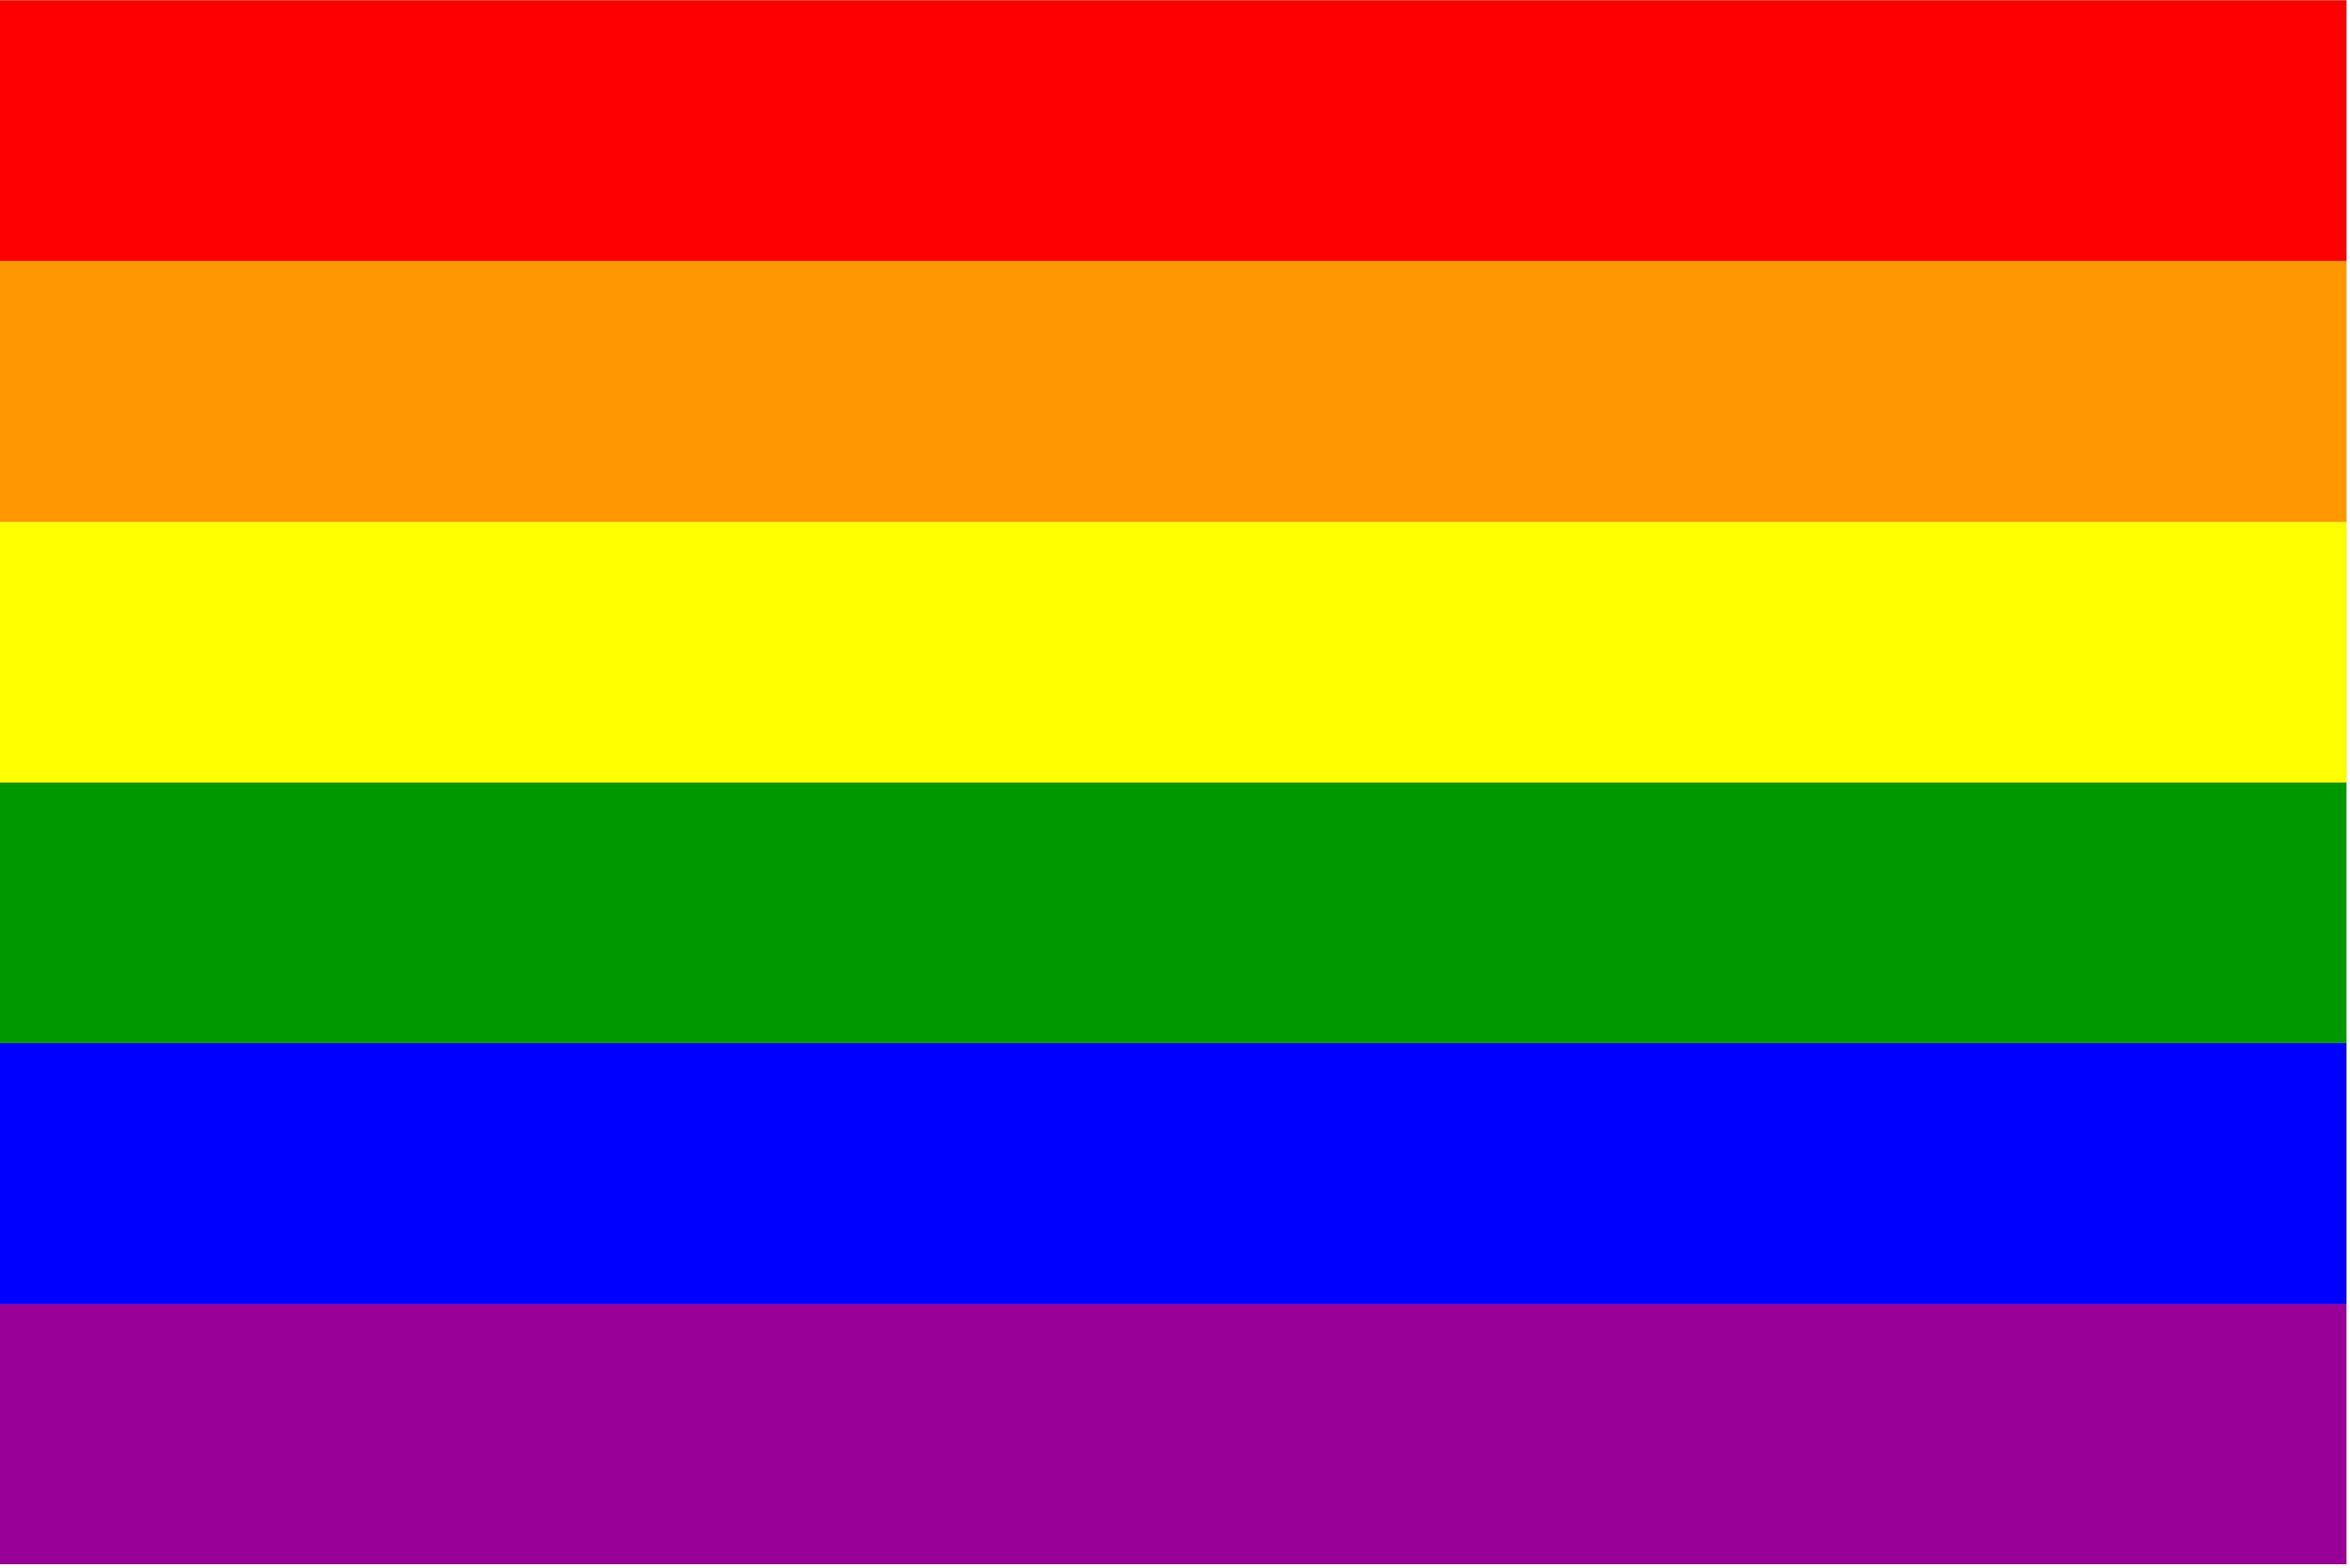 Gay Pride Wallpapers   ClipArt Best 3563x2378